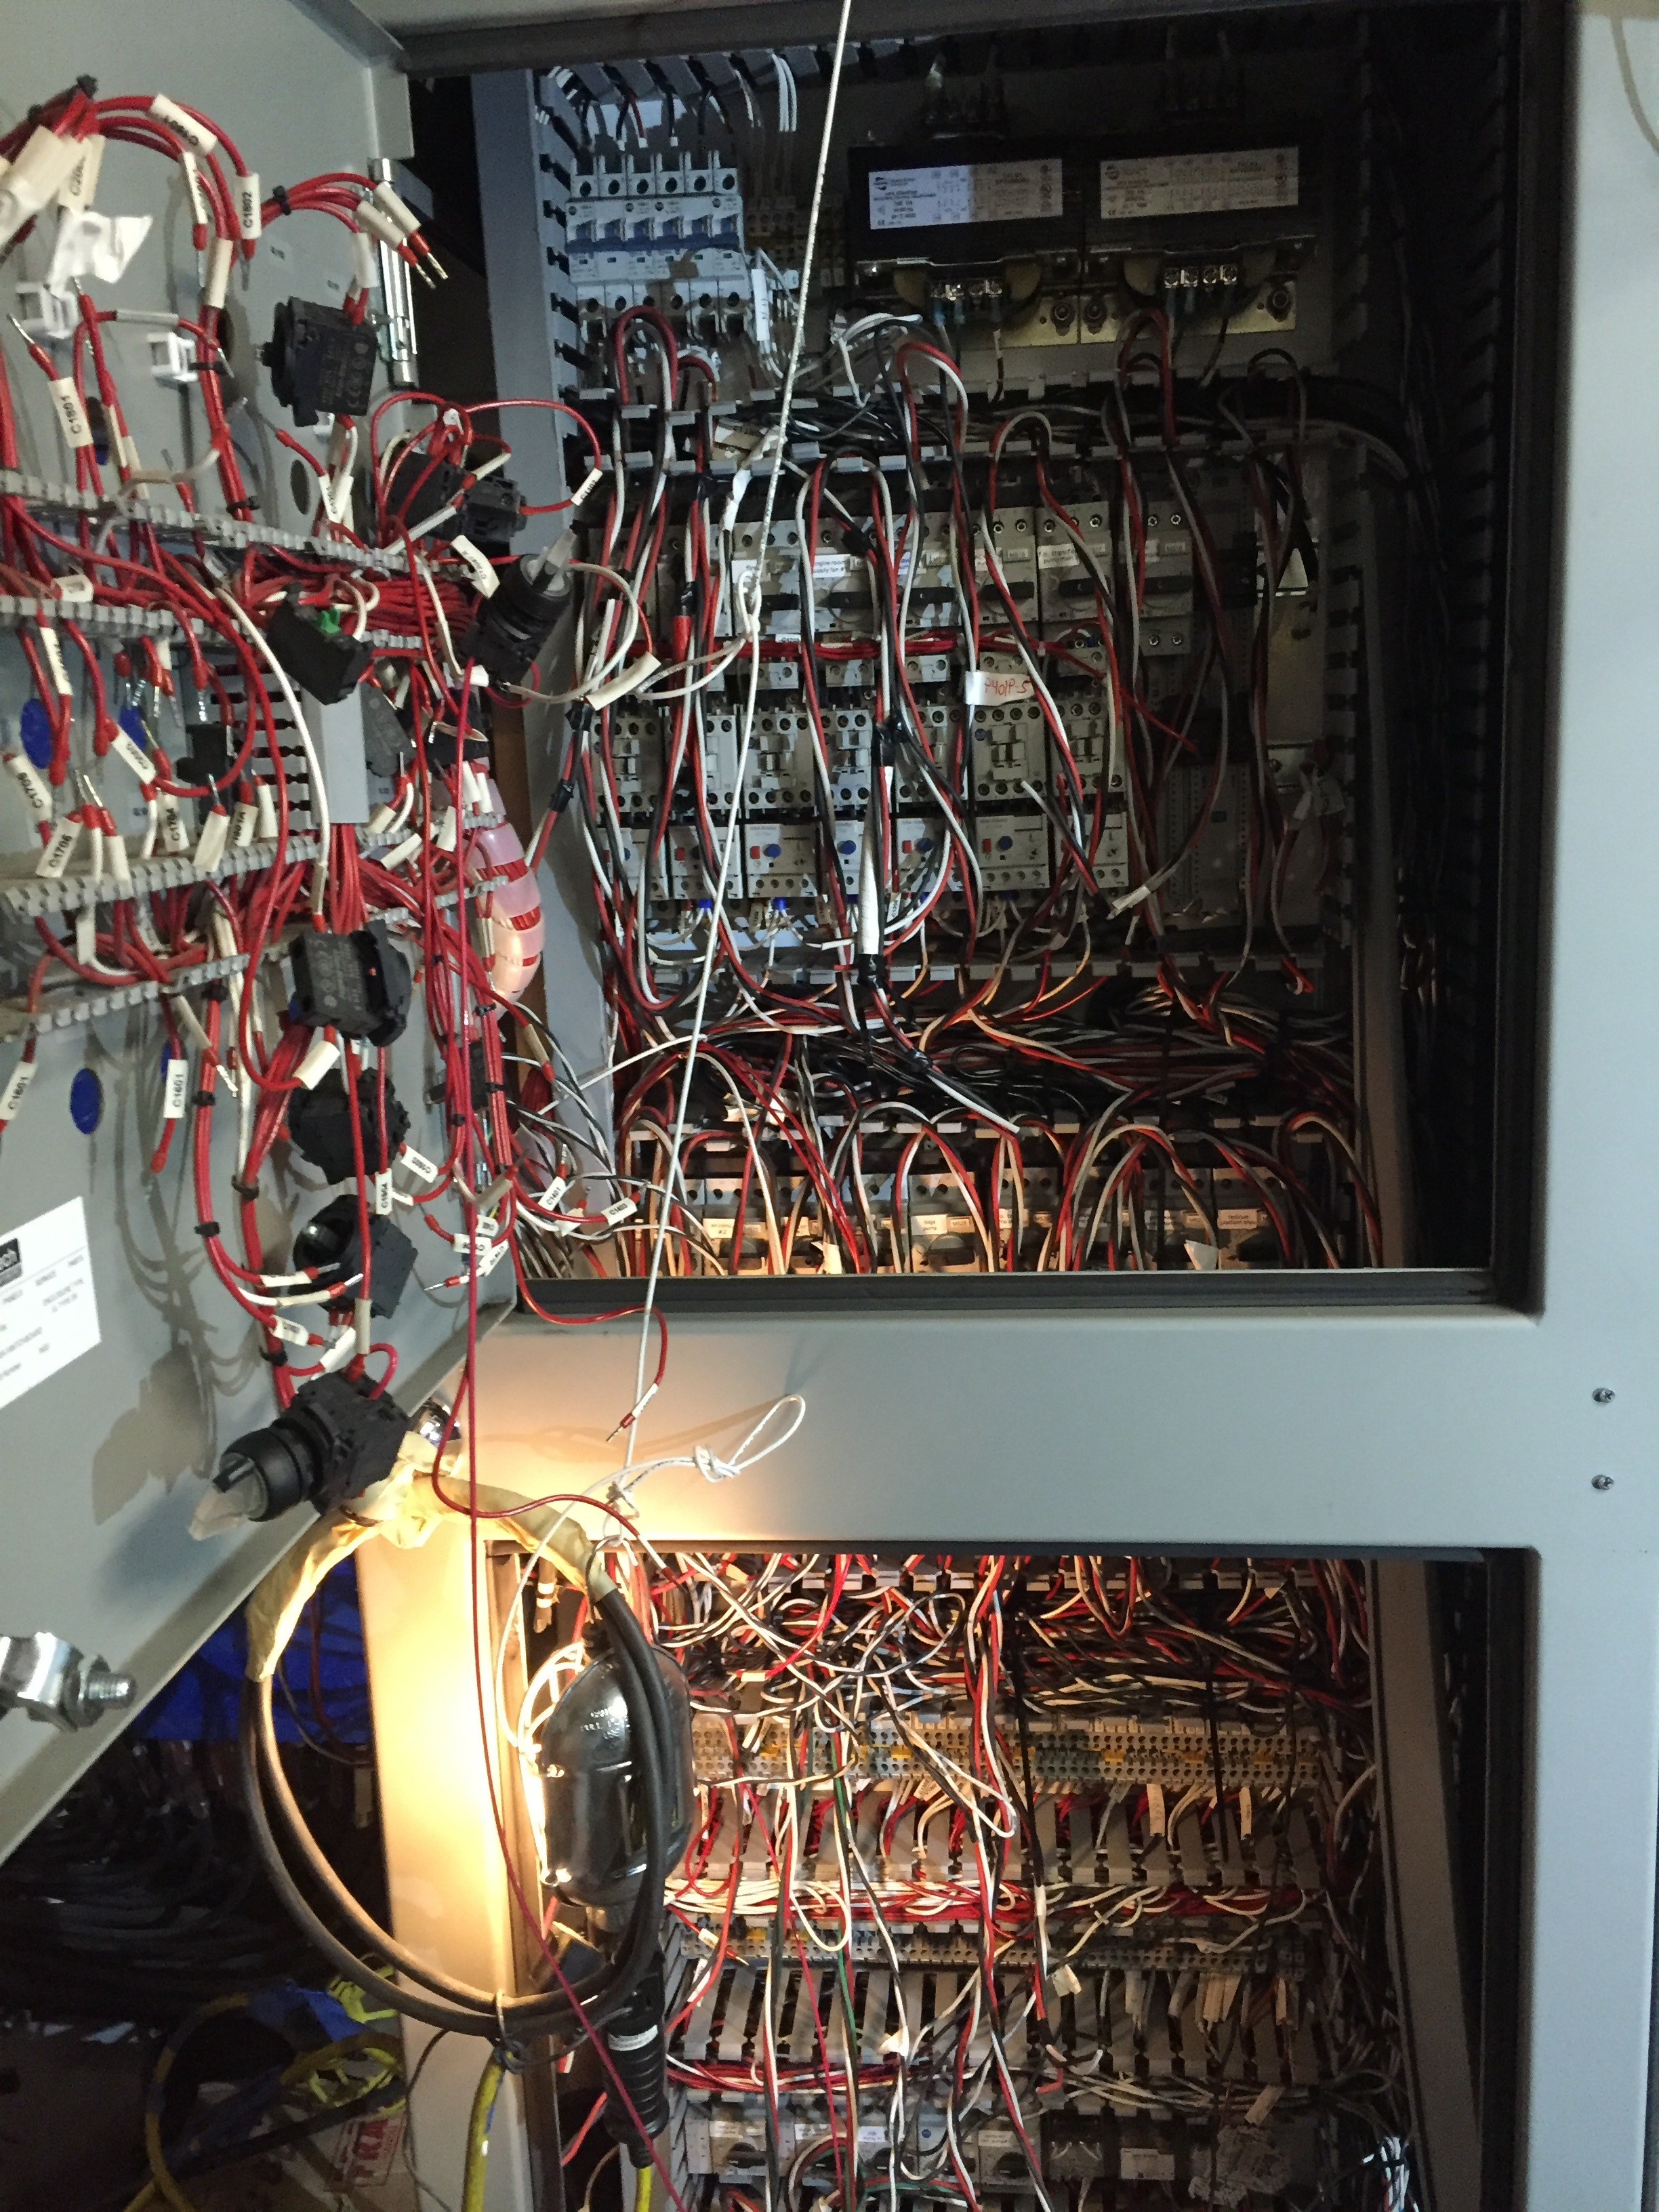 This is a bad example of a marine Panel.  Try to avoid messy installs.  They create lots of problems in the future.